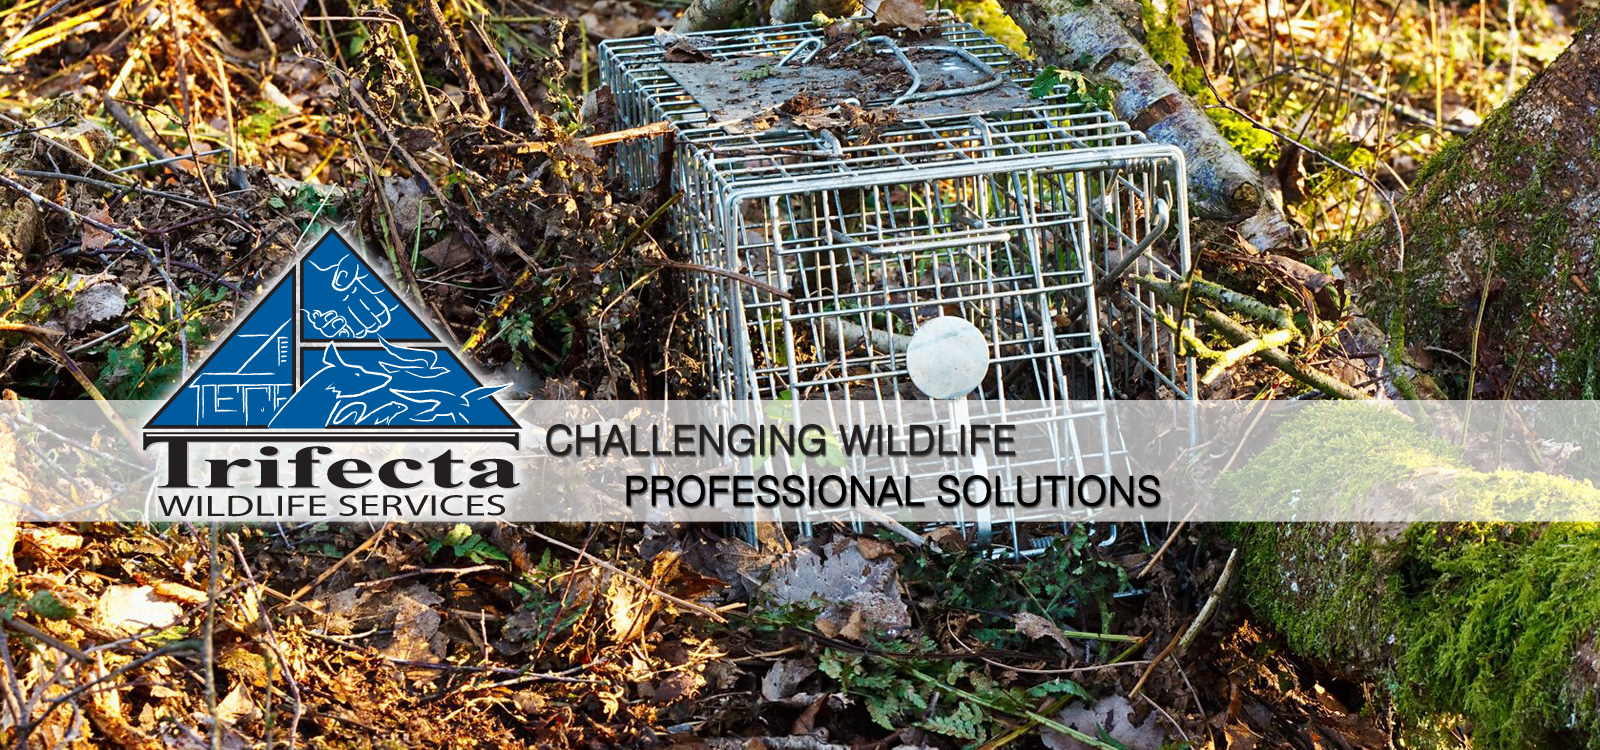 <div class='slider_caption'> <h1>Challenging Wildlife, Professional Solutions.  Call us today! (859) 415-4226</h1> <a class='slider-readmore' href=''>Read More</a>   </div>